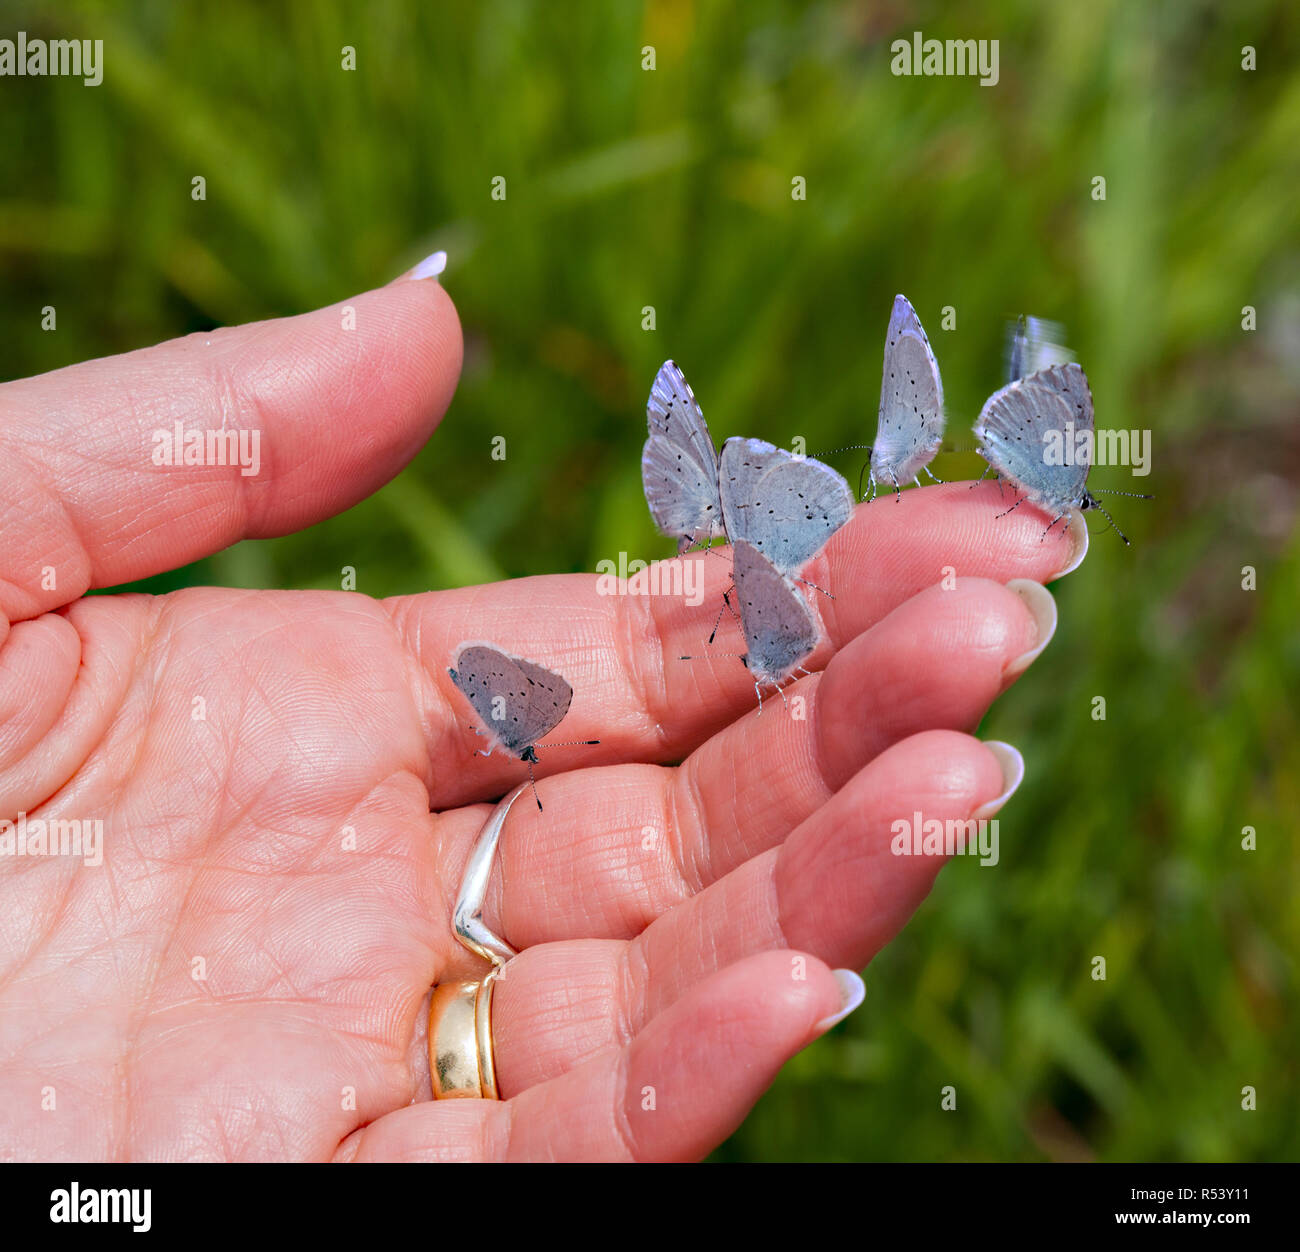 Woman person with 6 blue butterflies on her hand taking salts and nutrients from the skin - Stock Image